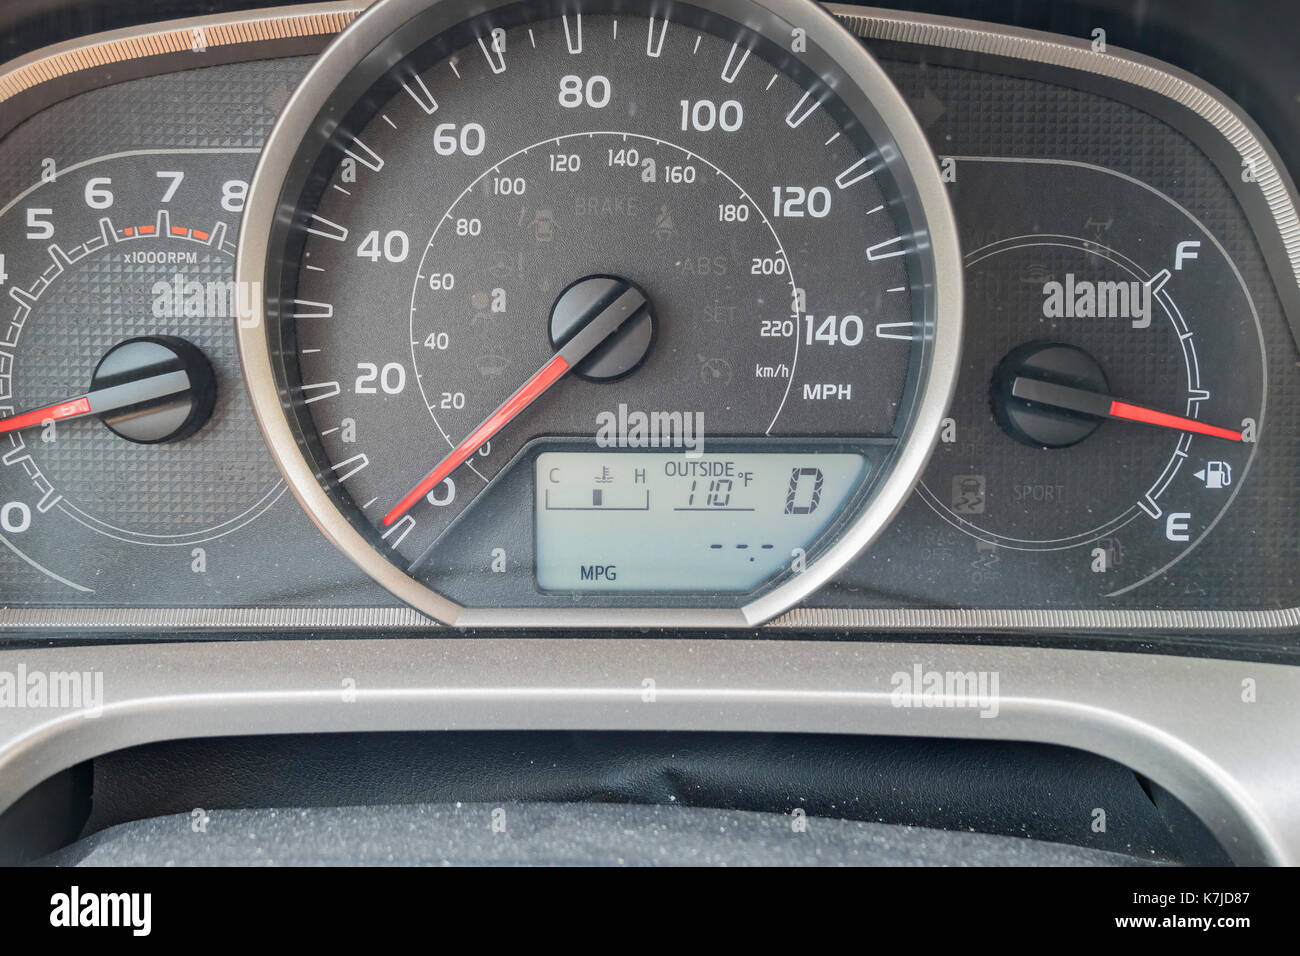 Extreme hot as shown on the dashboard, Los Angeles, California, U.S.A. - Stock Image